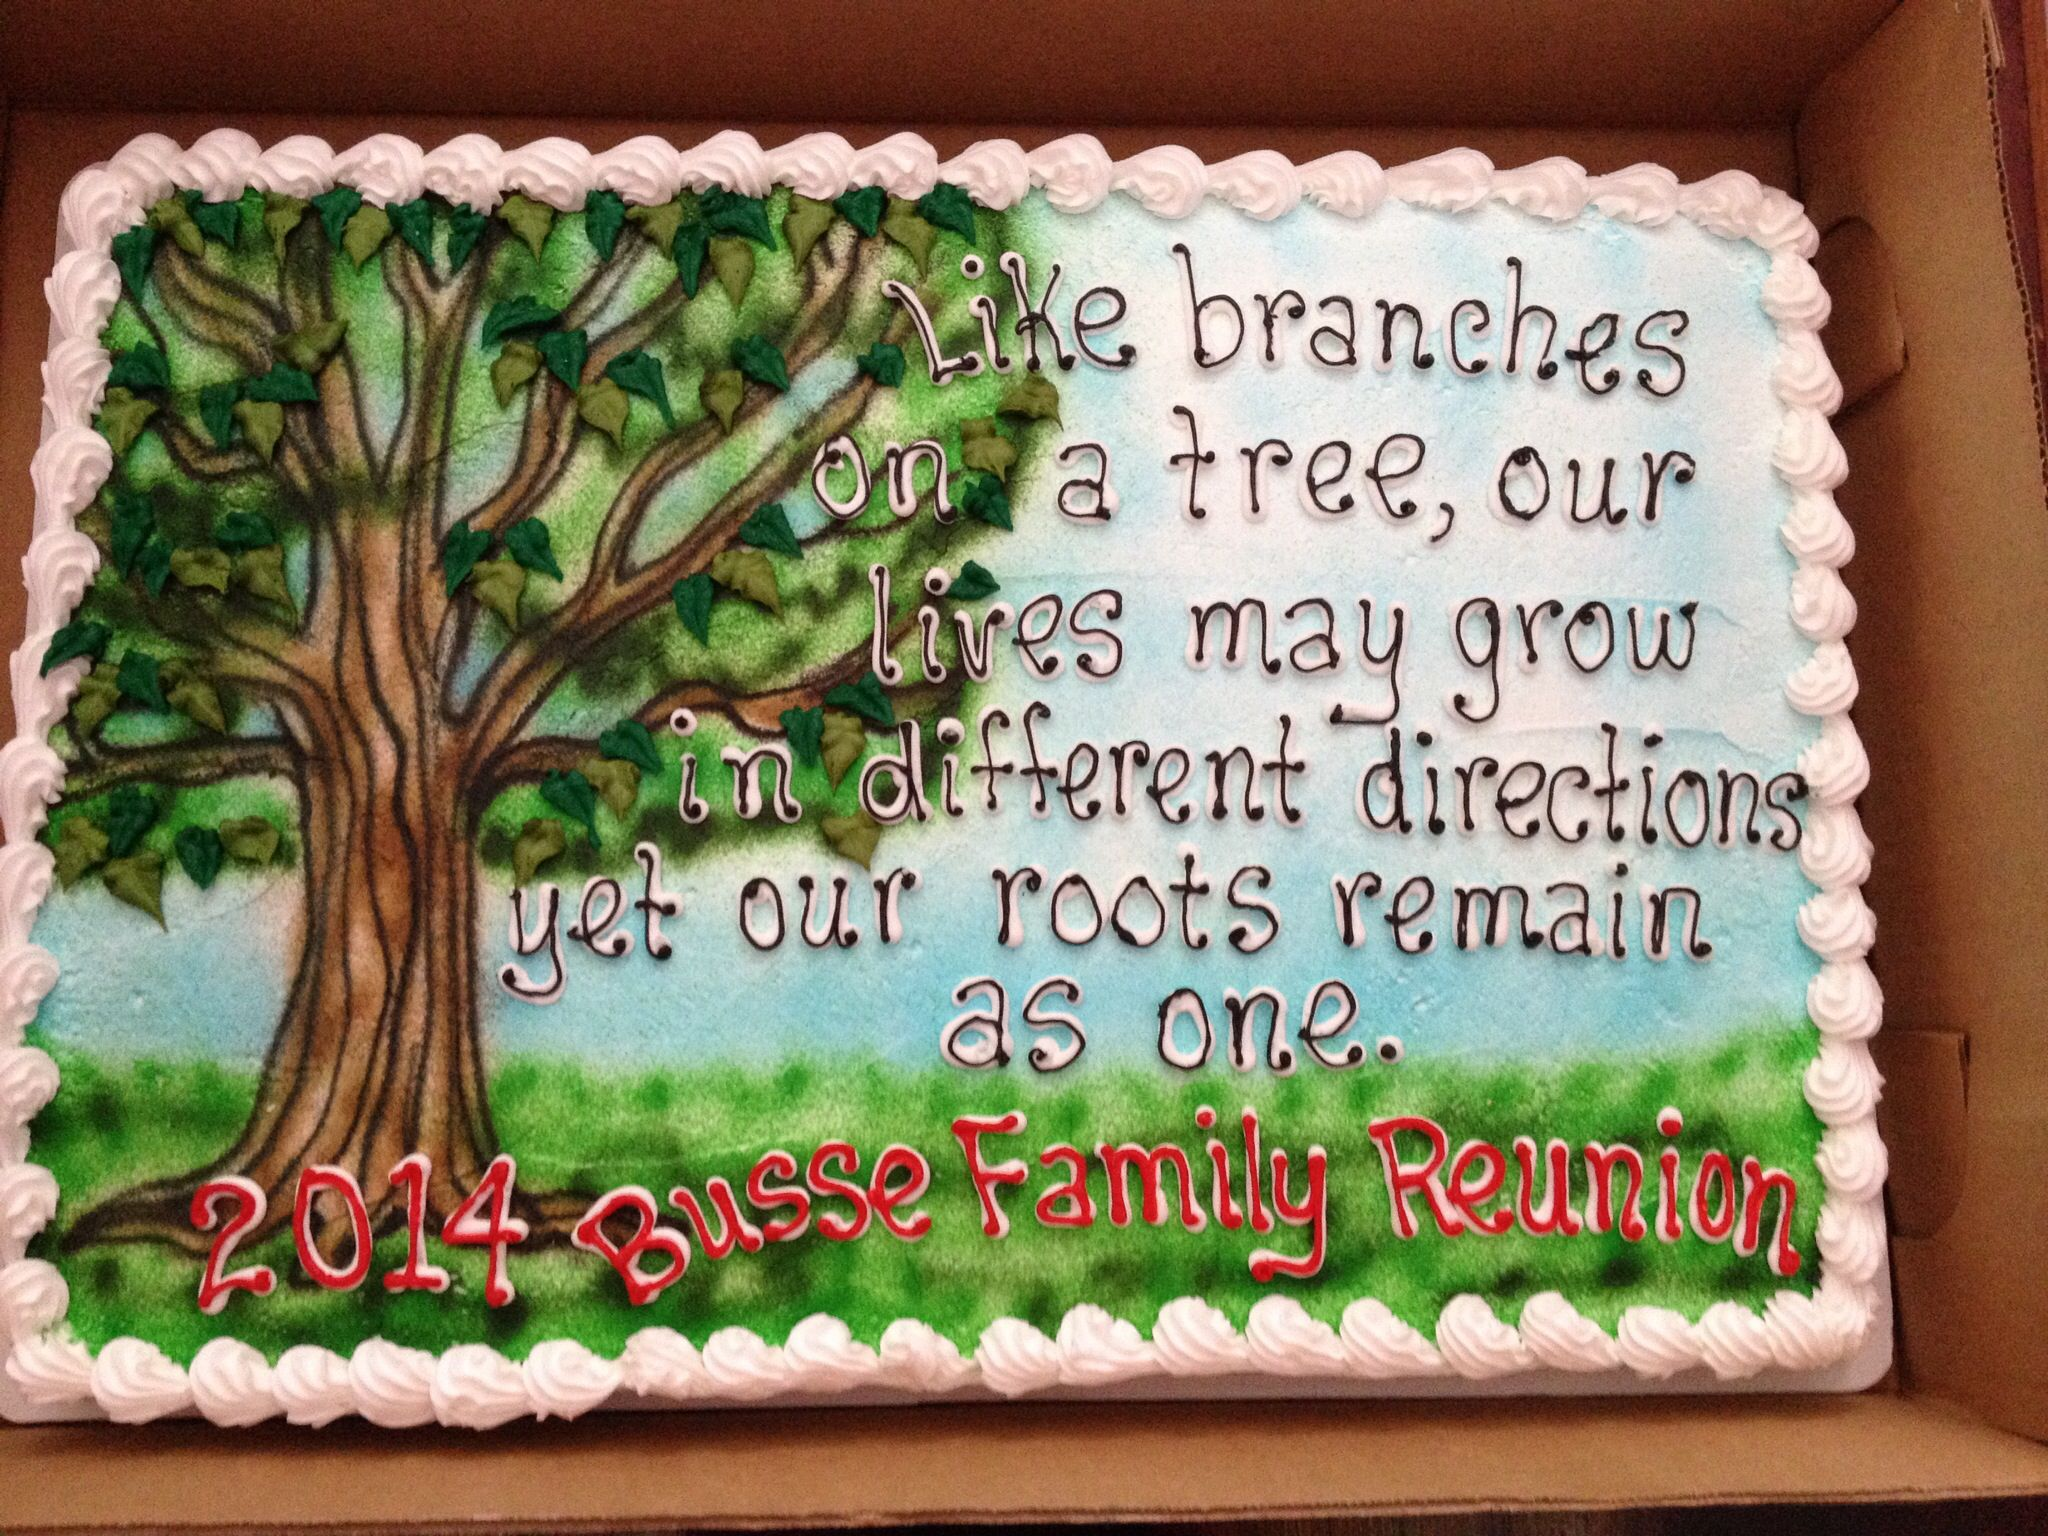 I had this cake made for our family reunion. Love it! #familypicnicfoods